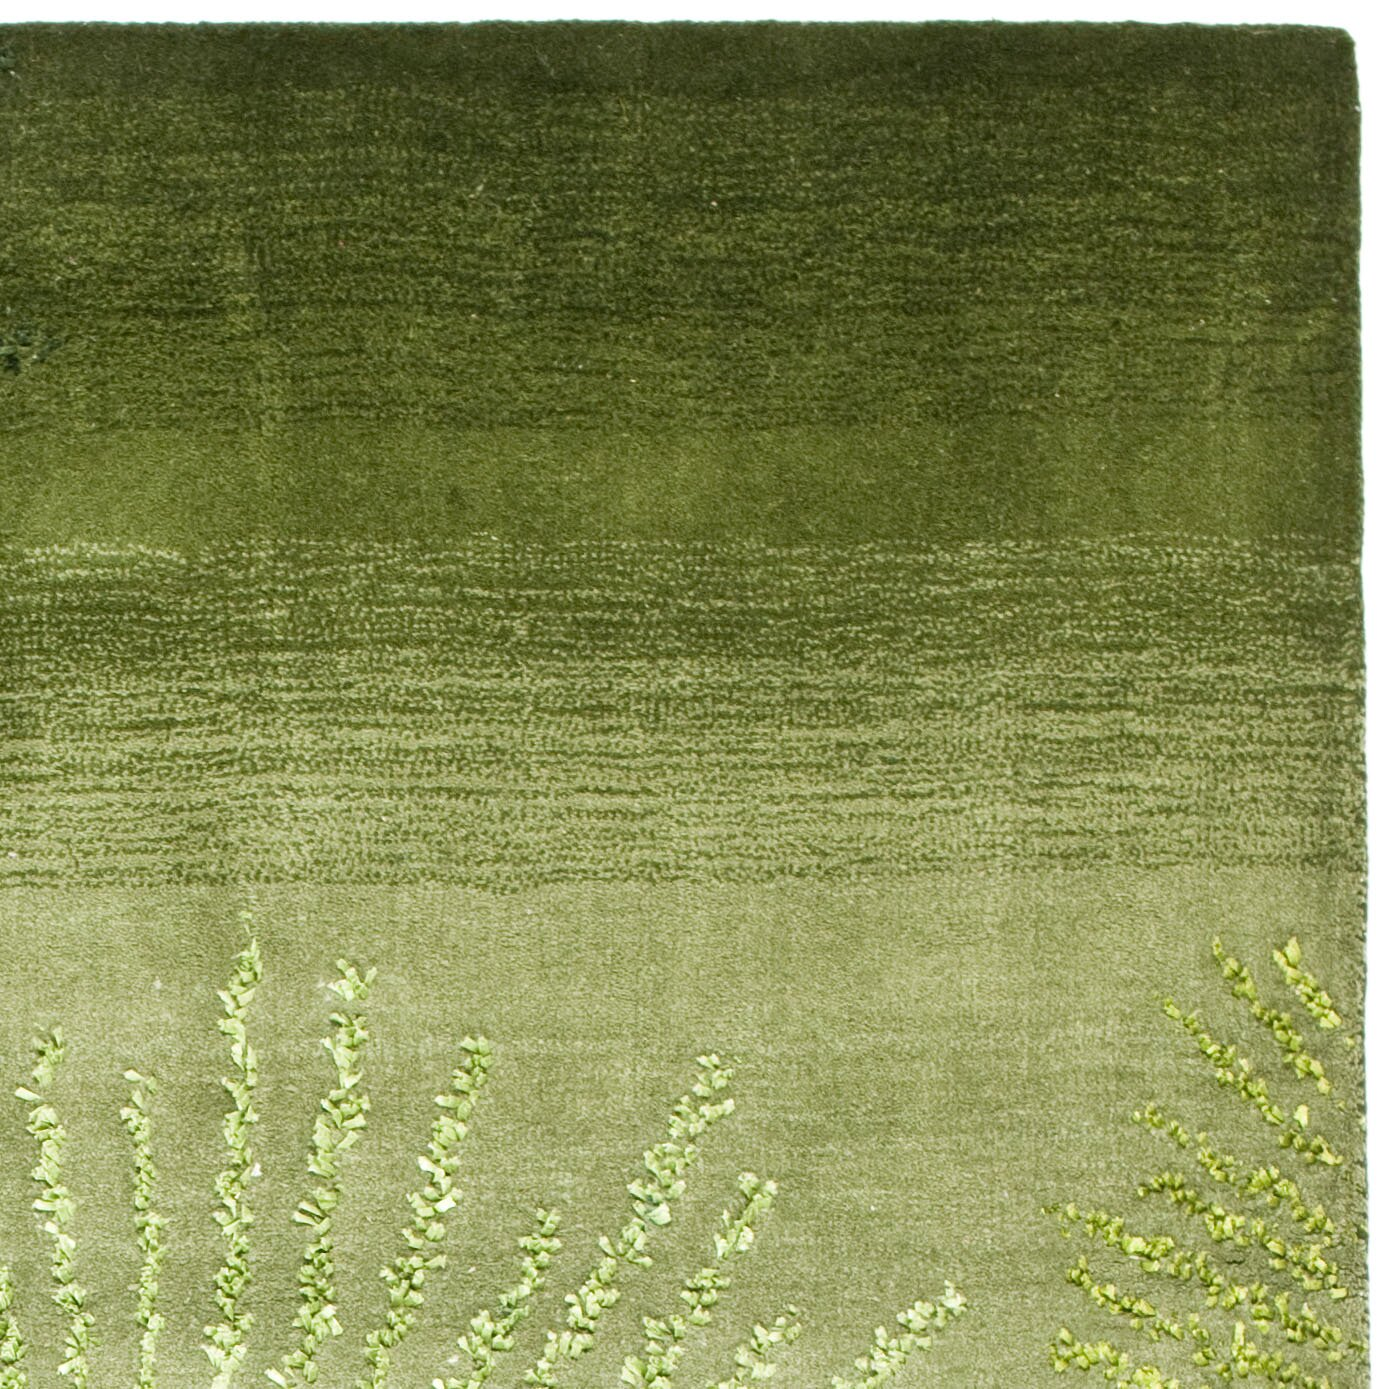 Safavieh Soho Green Area Rug & Reviews